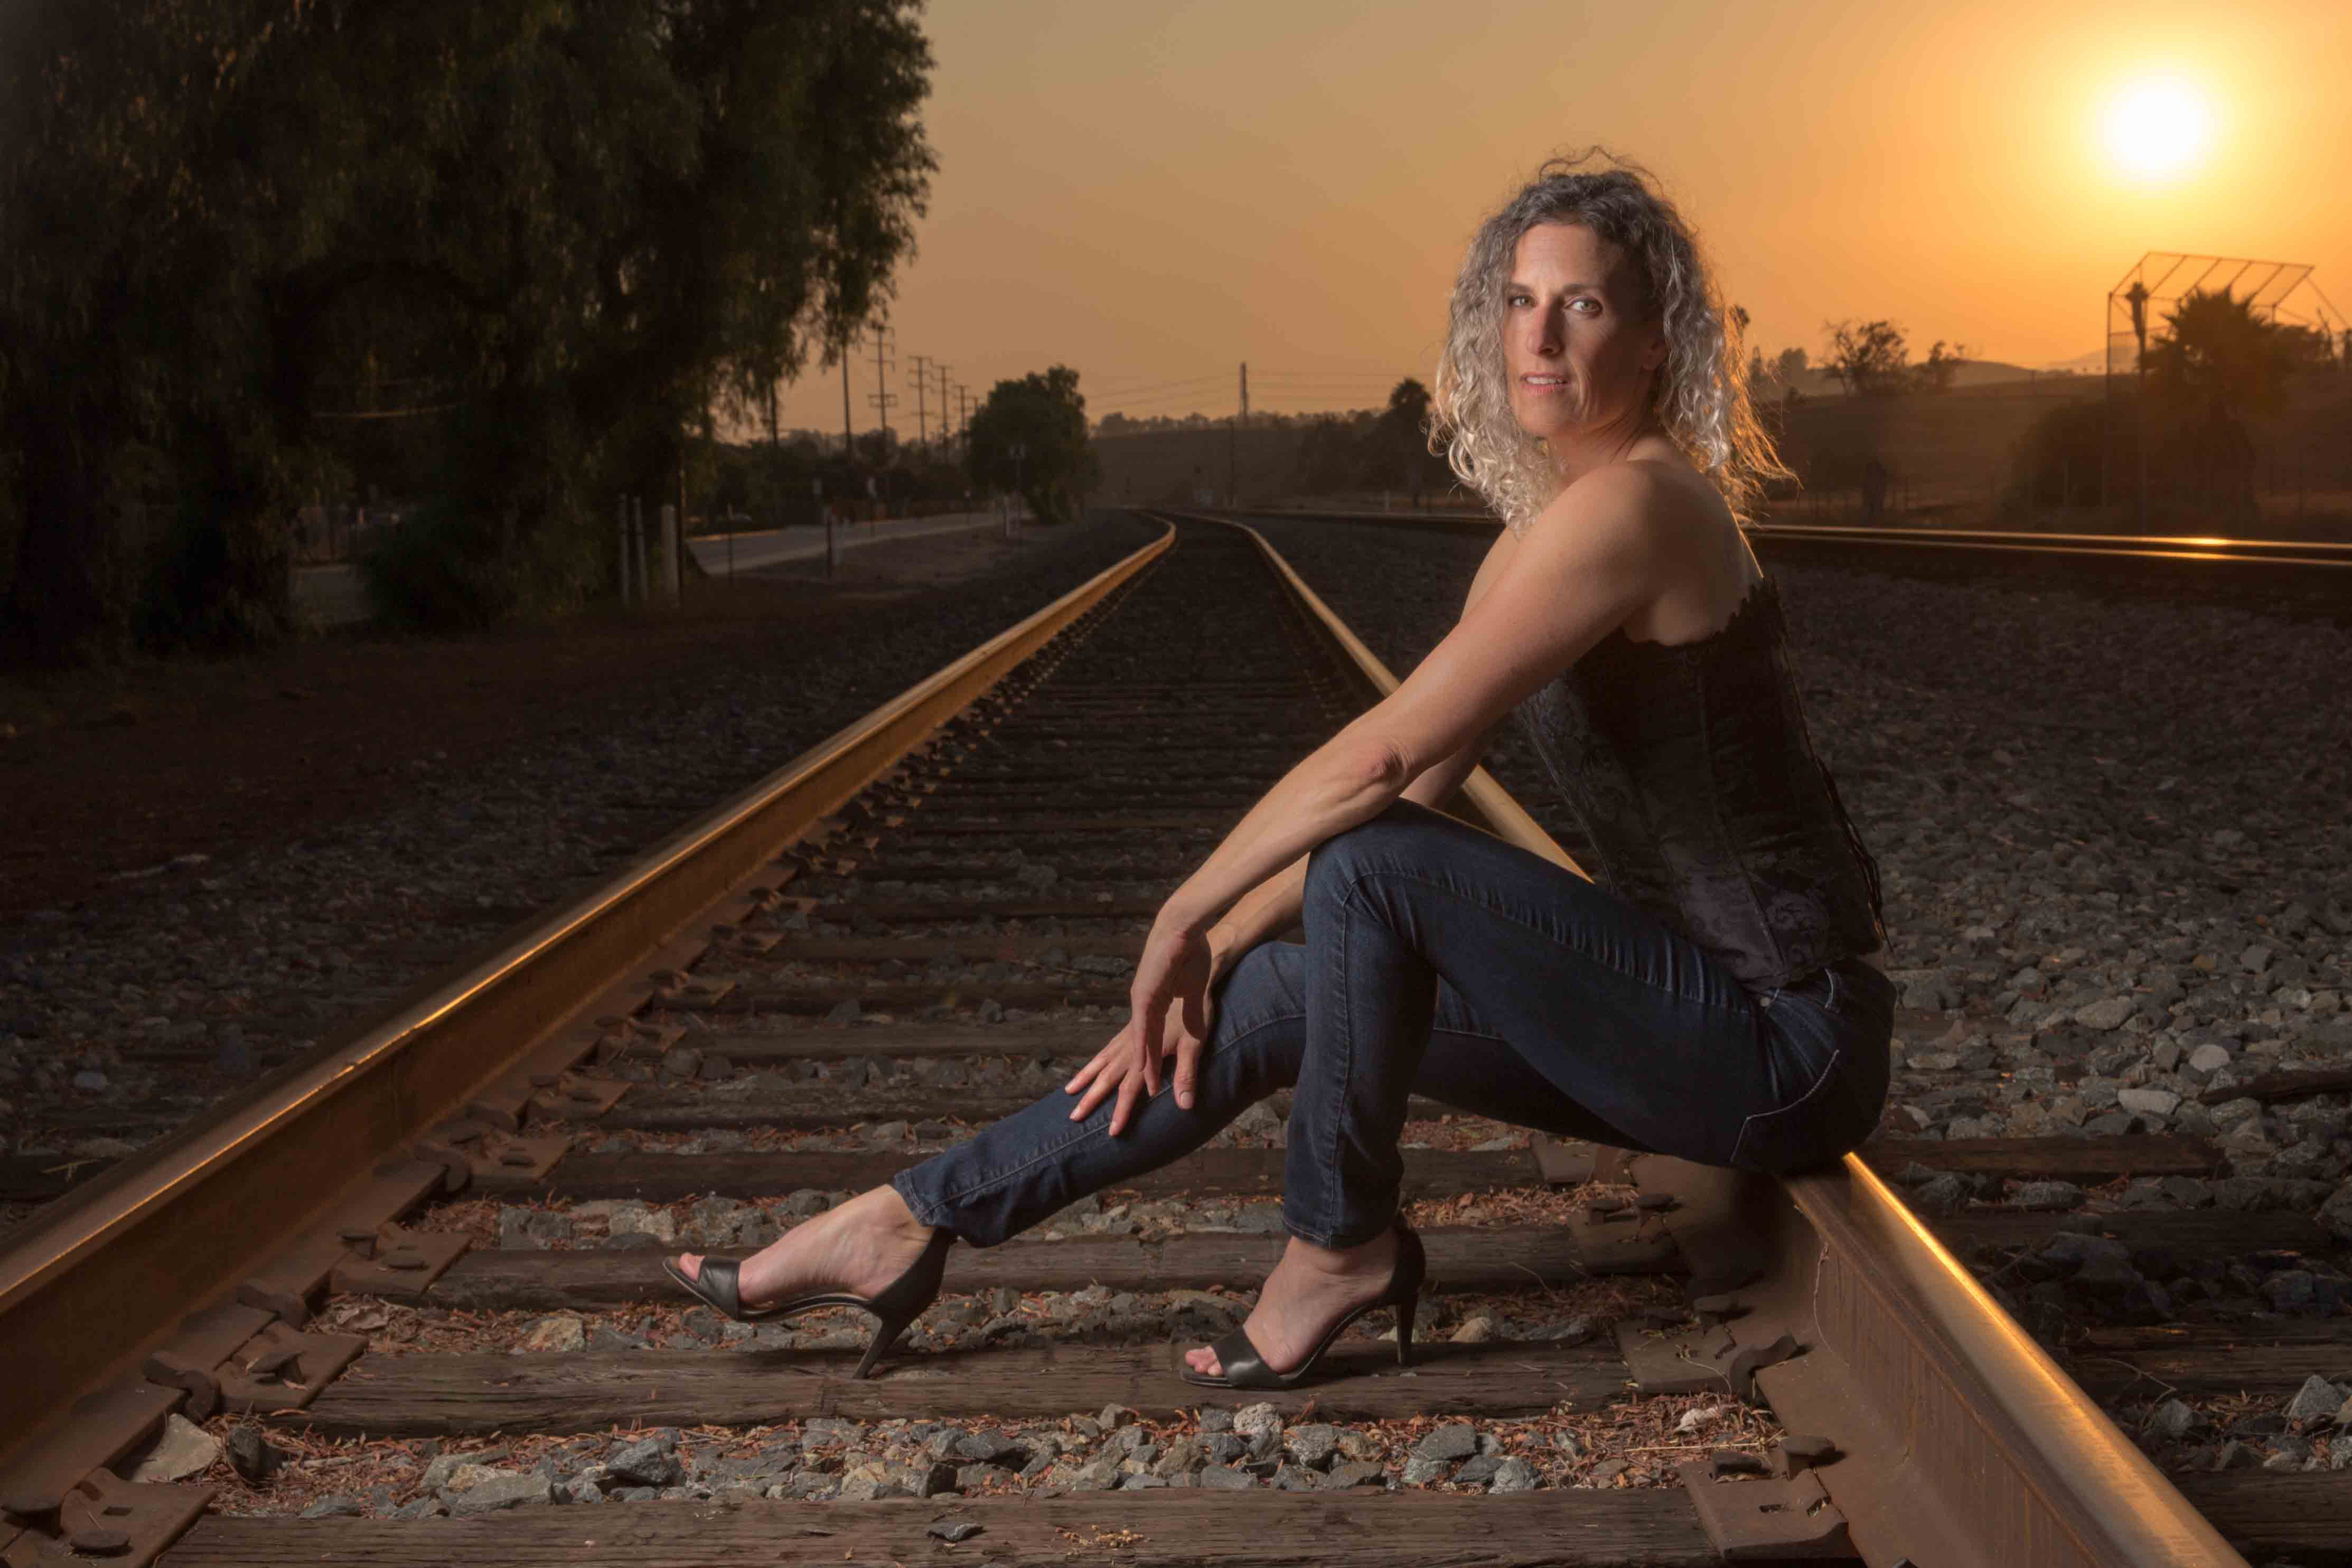 Photo Shoot on the Tracks